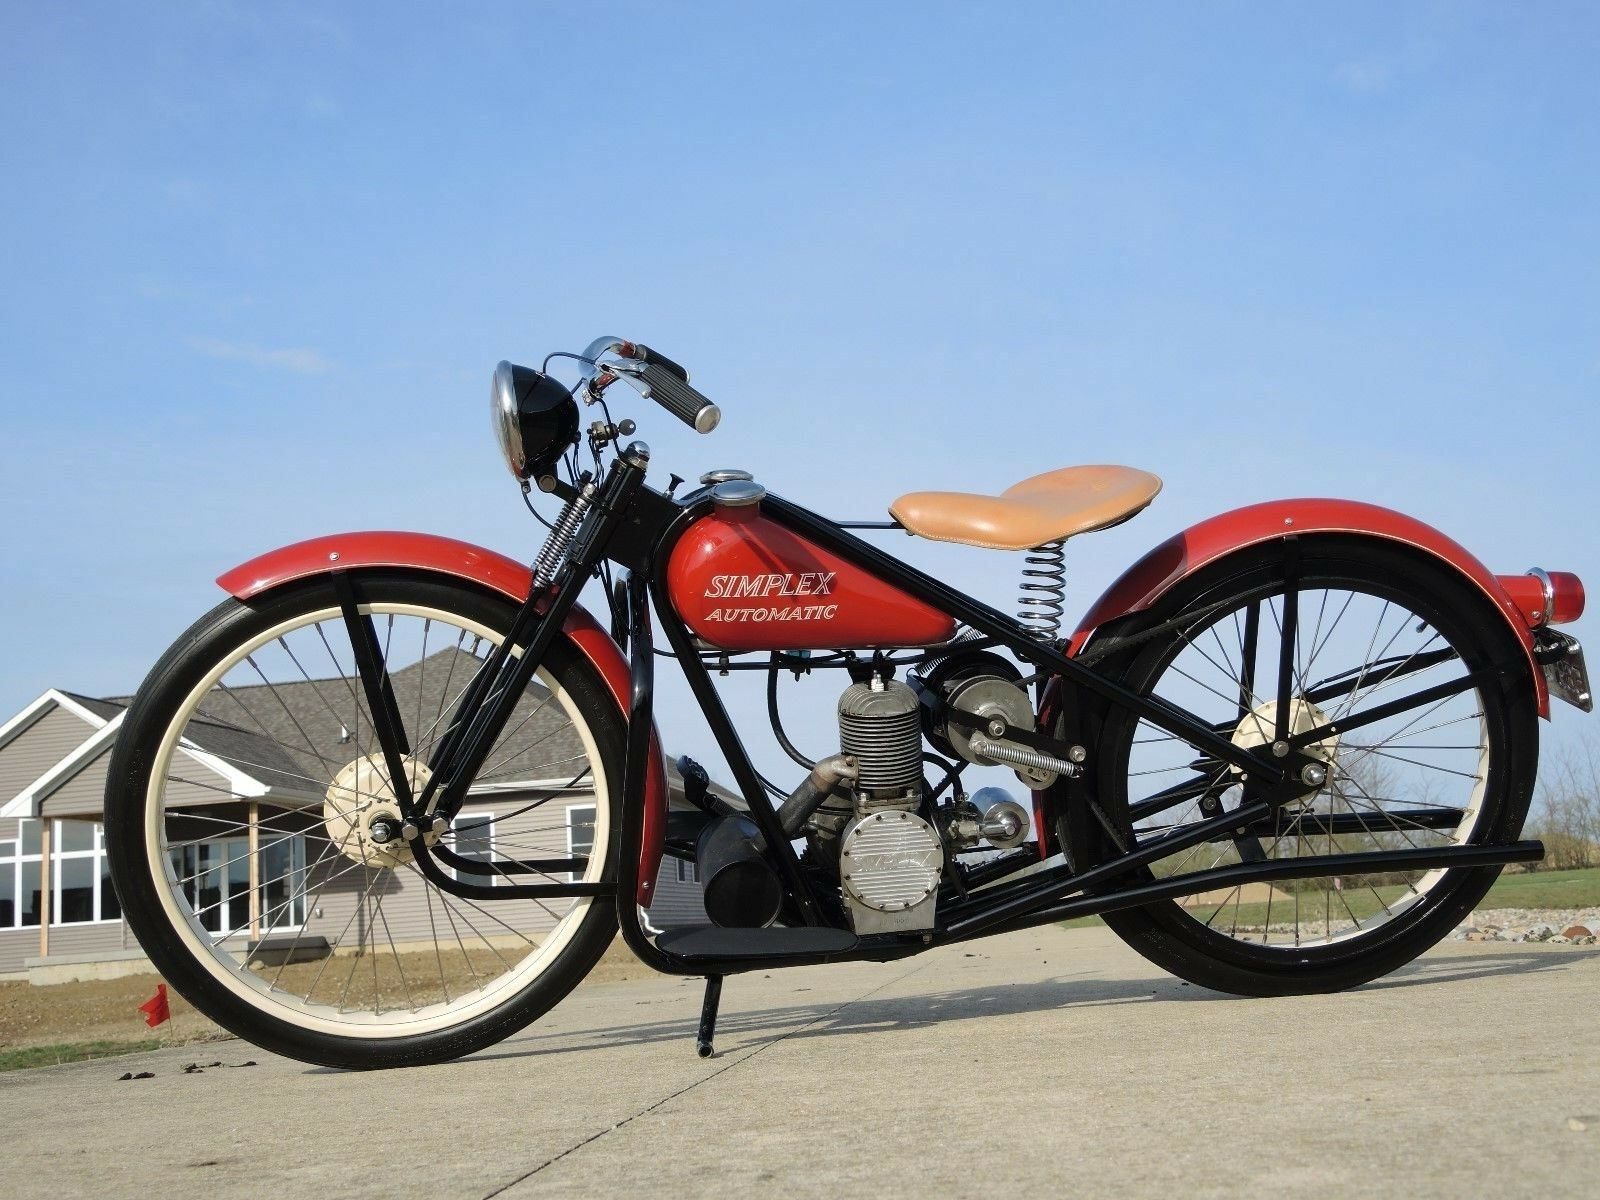 Used Cars New Orleans >> 1958 Simplex / Servi-cycle / Wizard Automatic Motorcycle, 150cc, 2-cycle, Runs!